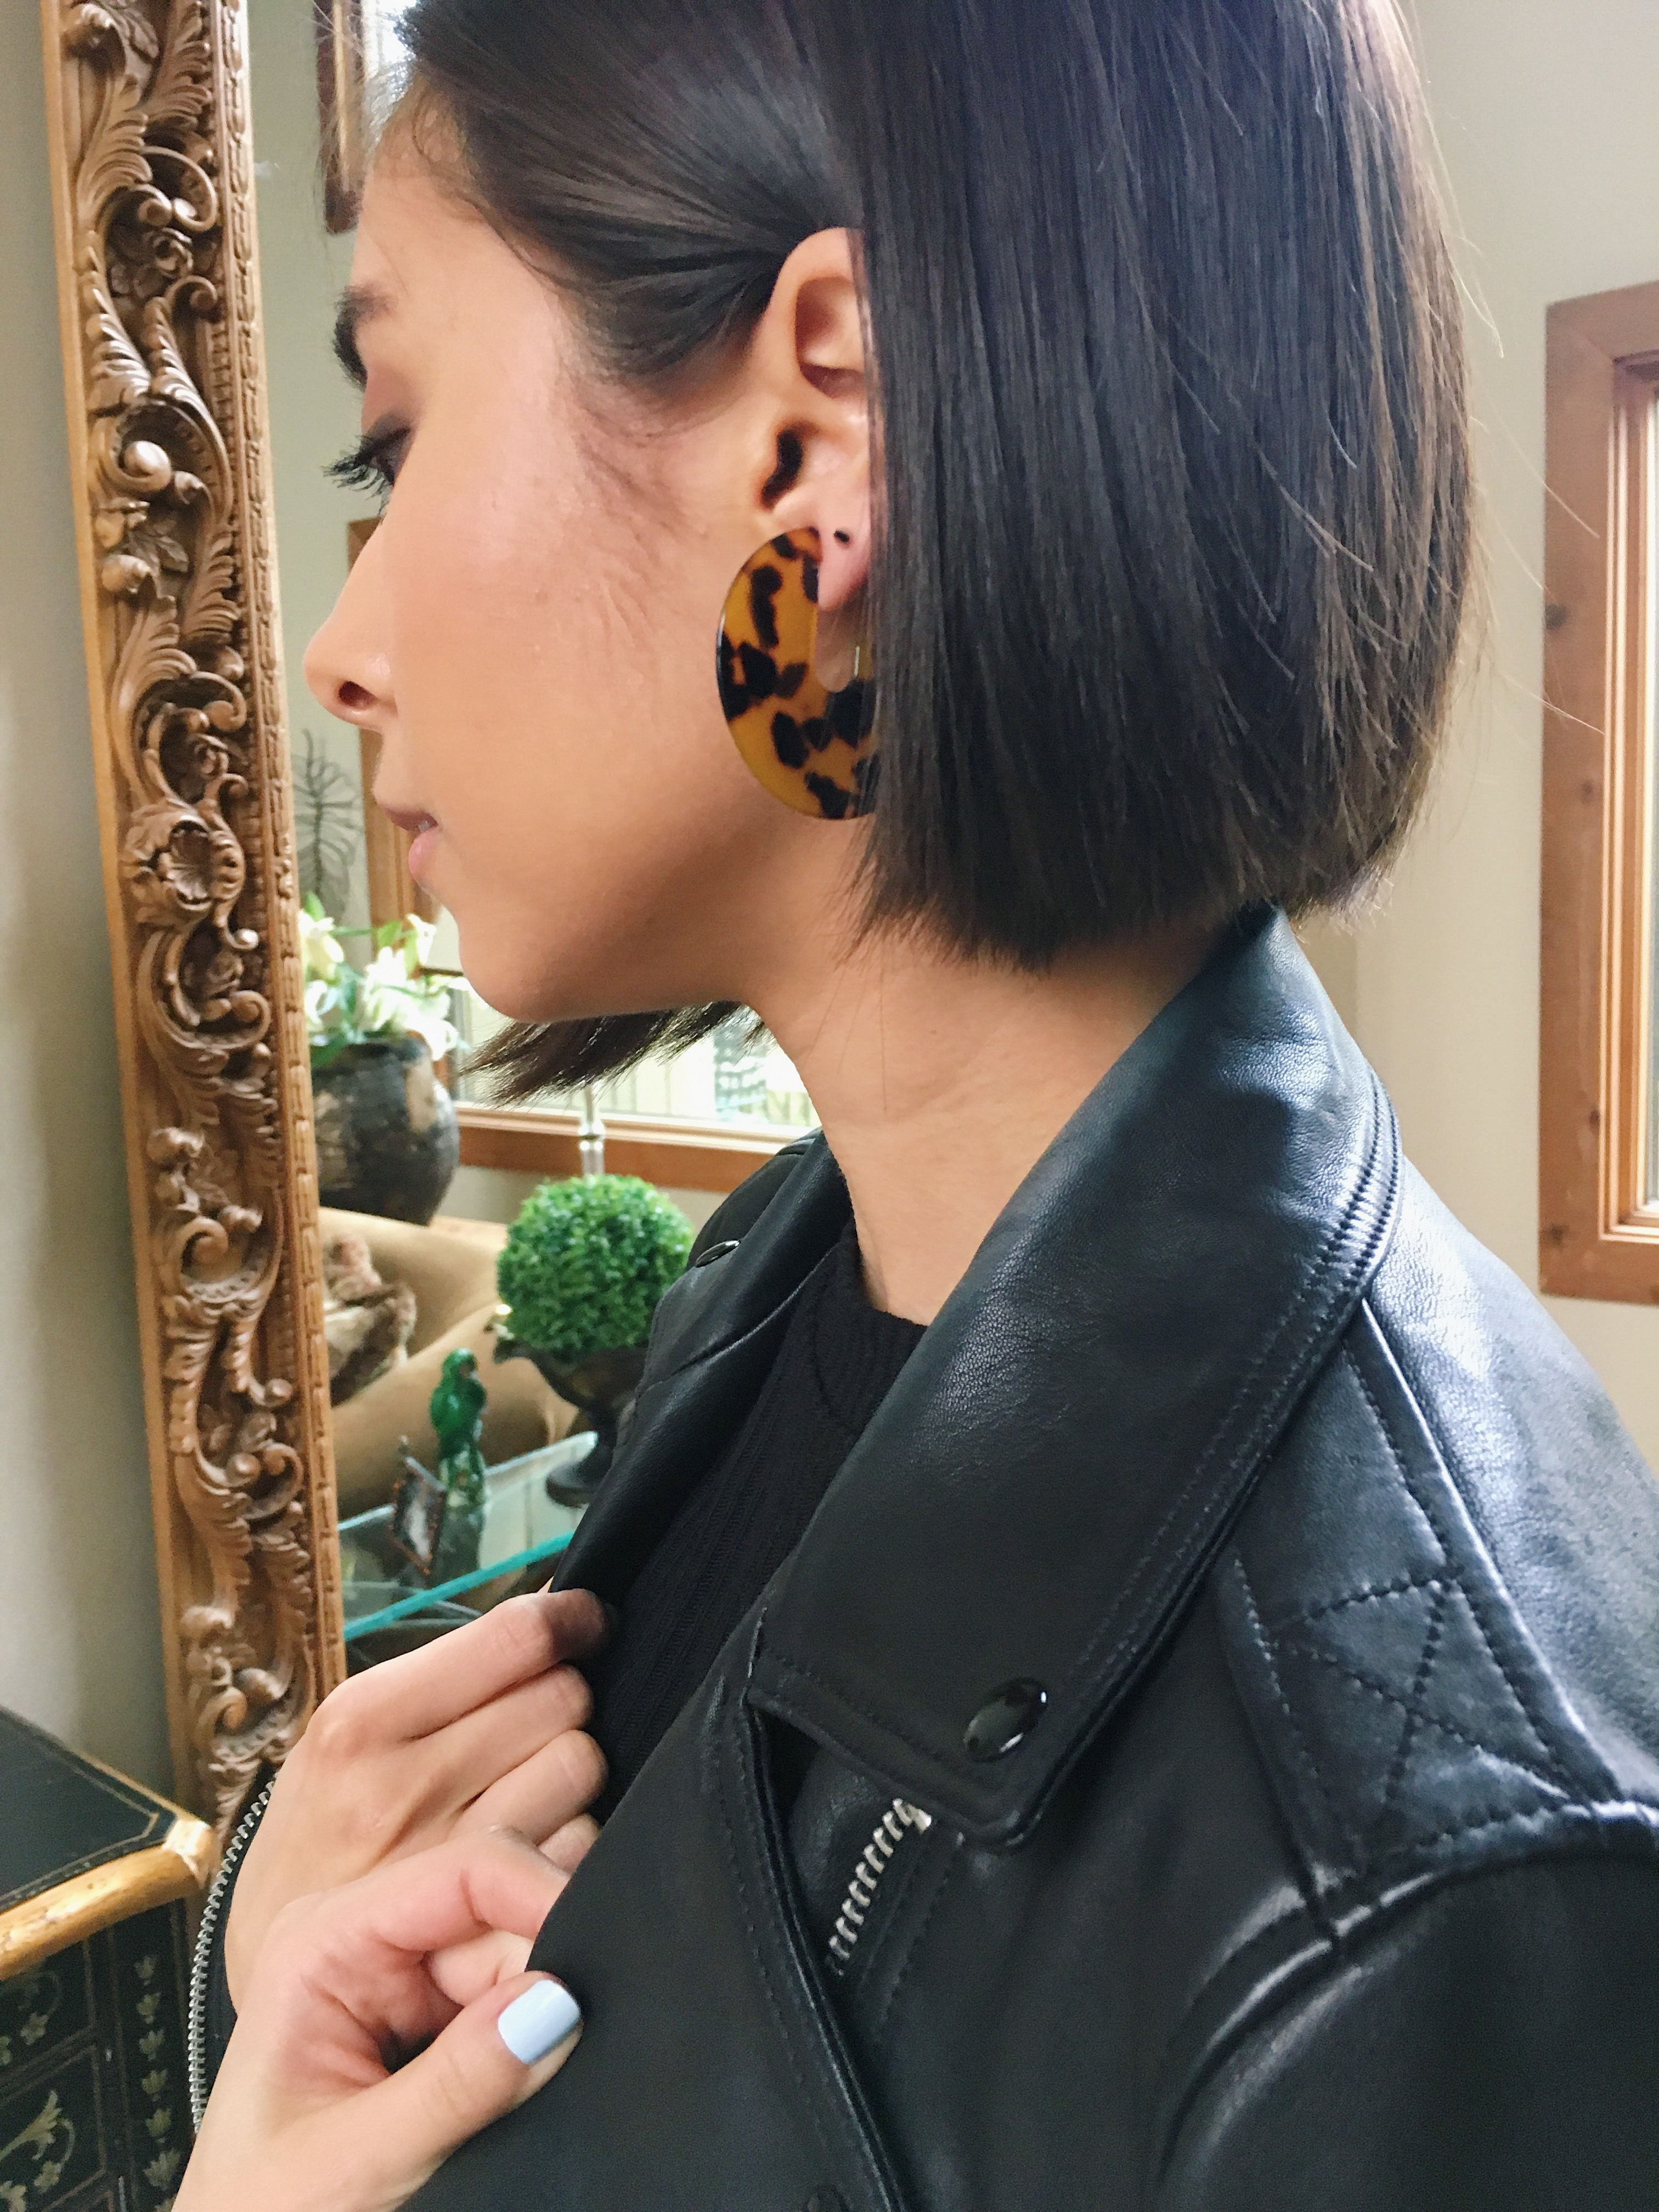 boston fashion blogger in leather jacket, tortoise shell earrings, spring trends, bob haircut